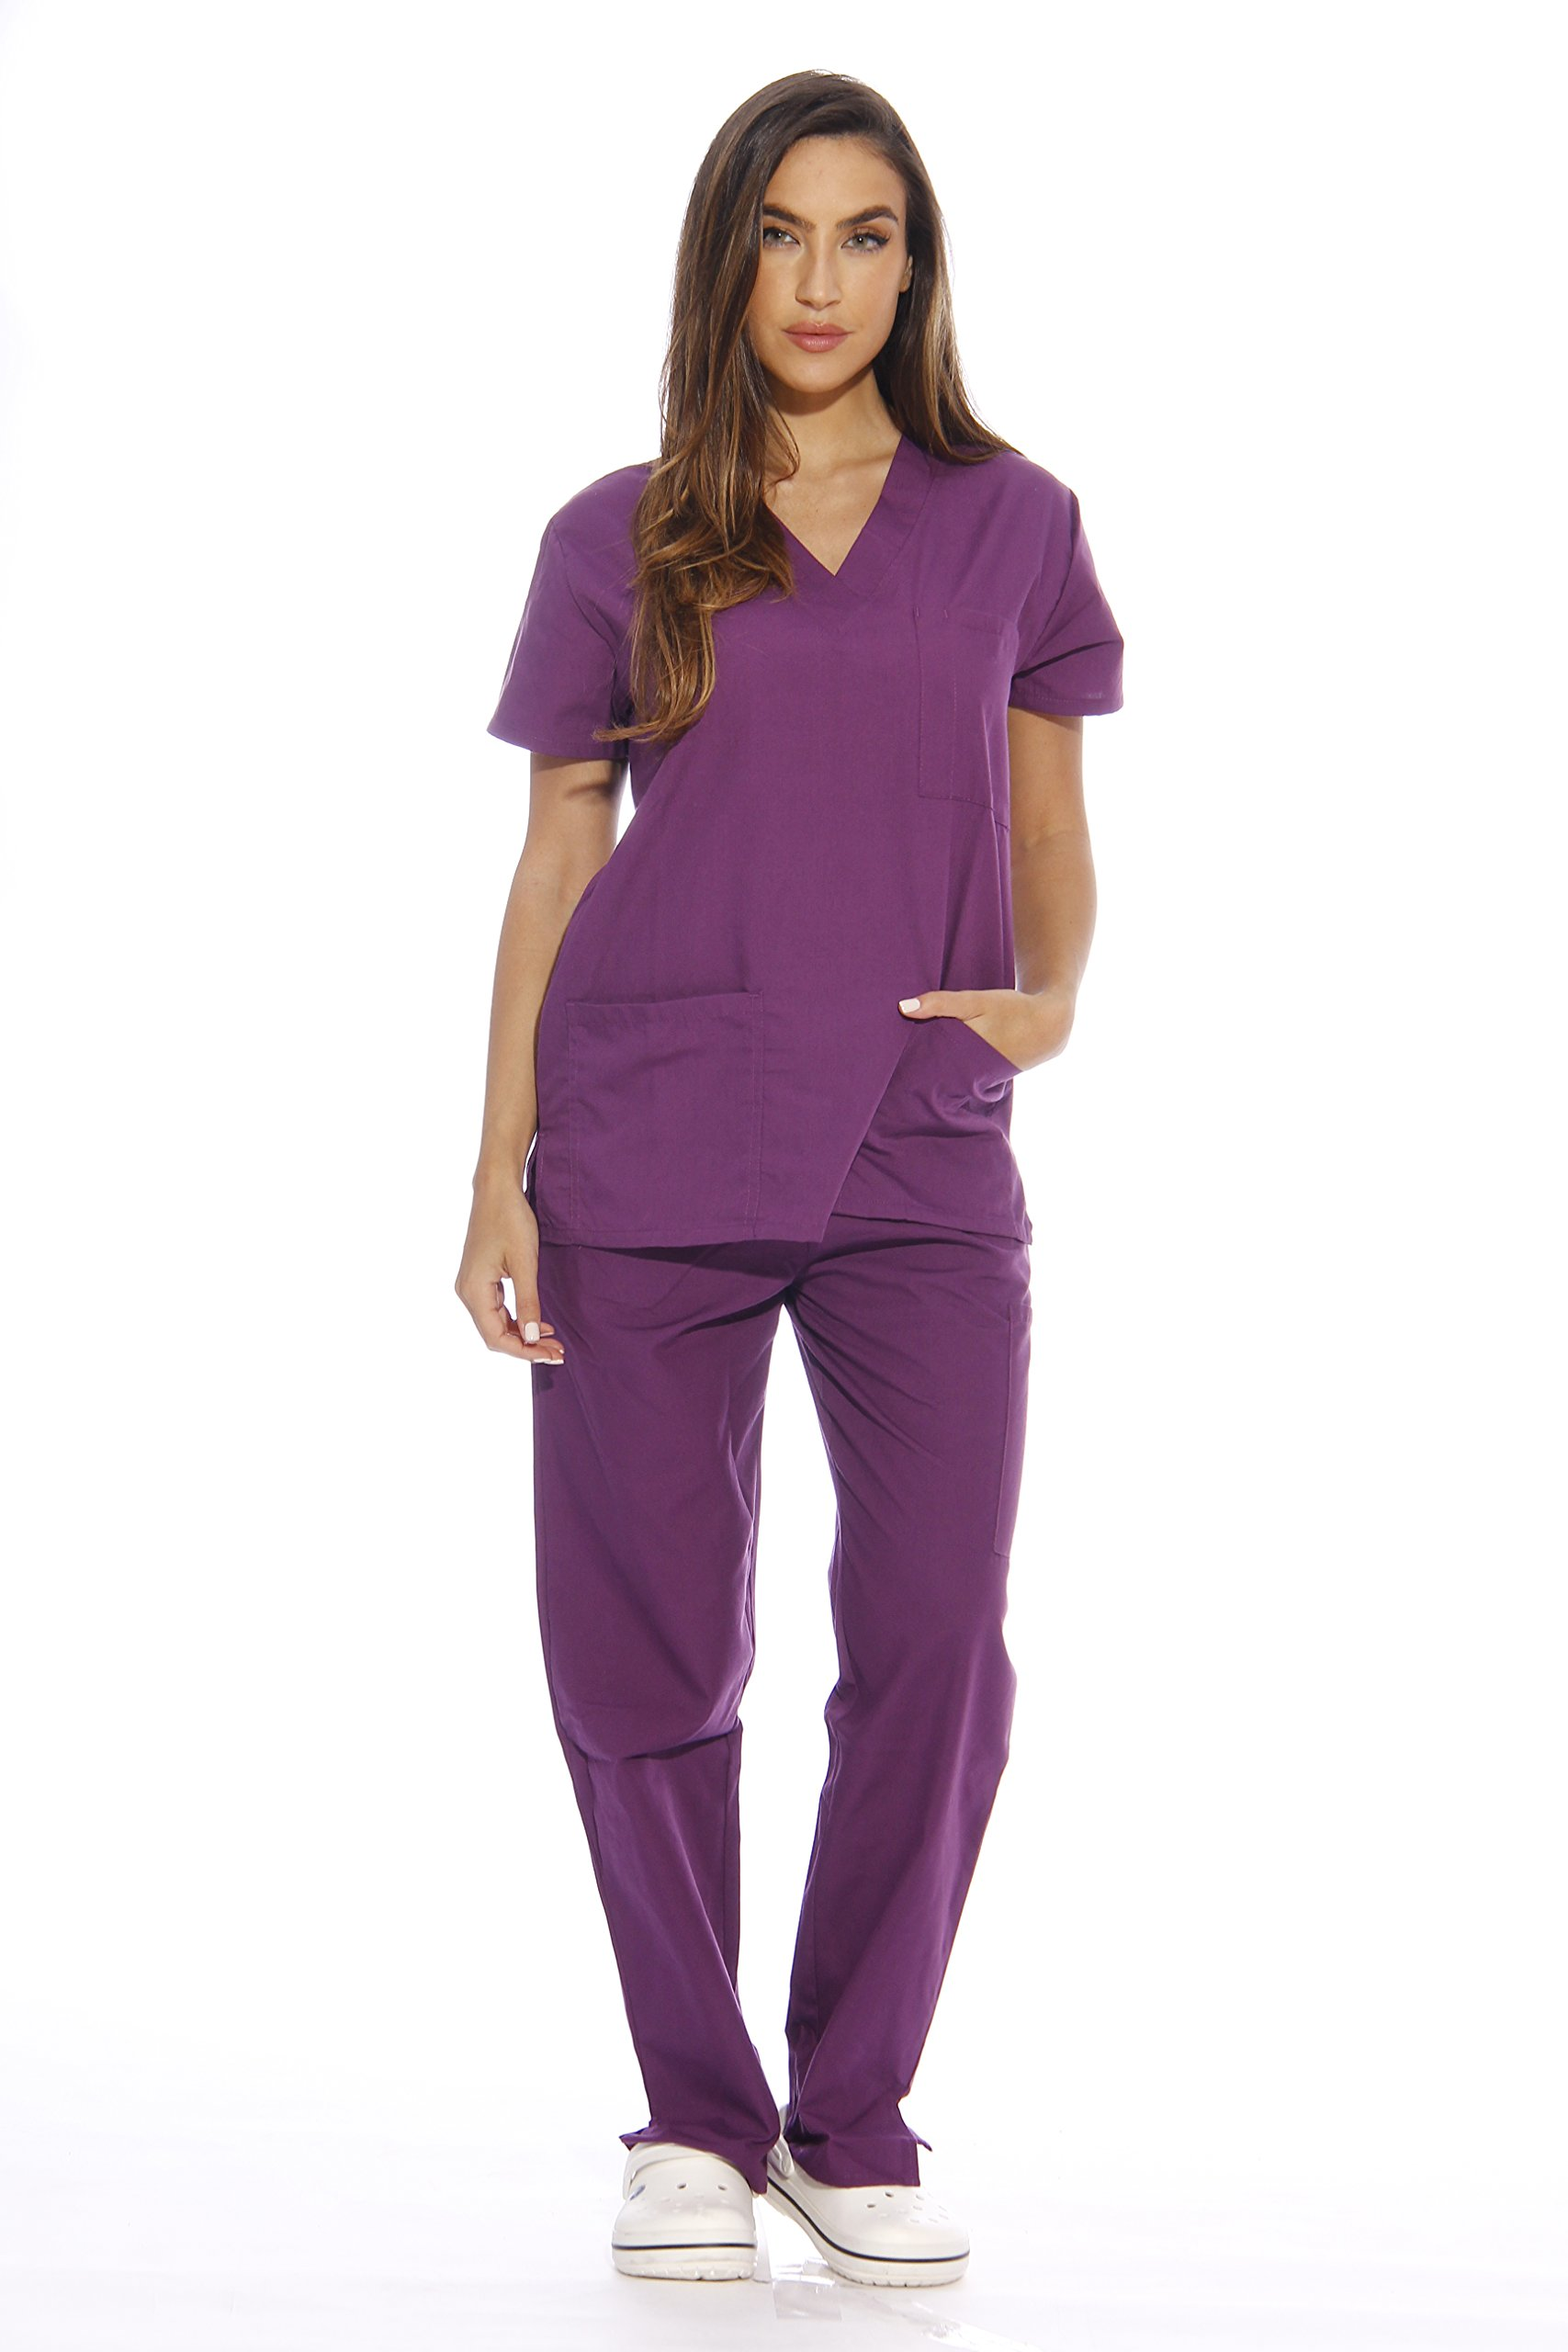 Just Love Women's Scrub Sets Six Pocket Medical Scrubs (V-Neck With Cargo Pant), Eggplant, Small